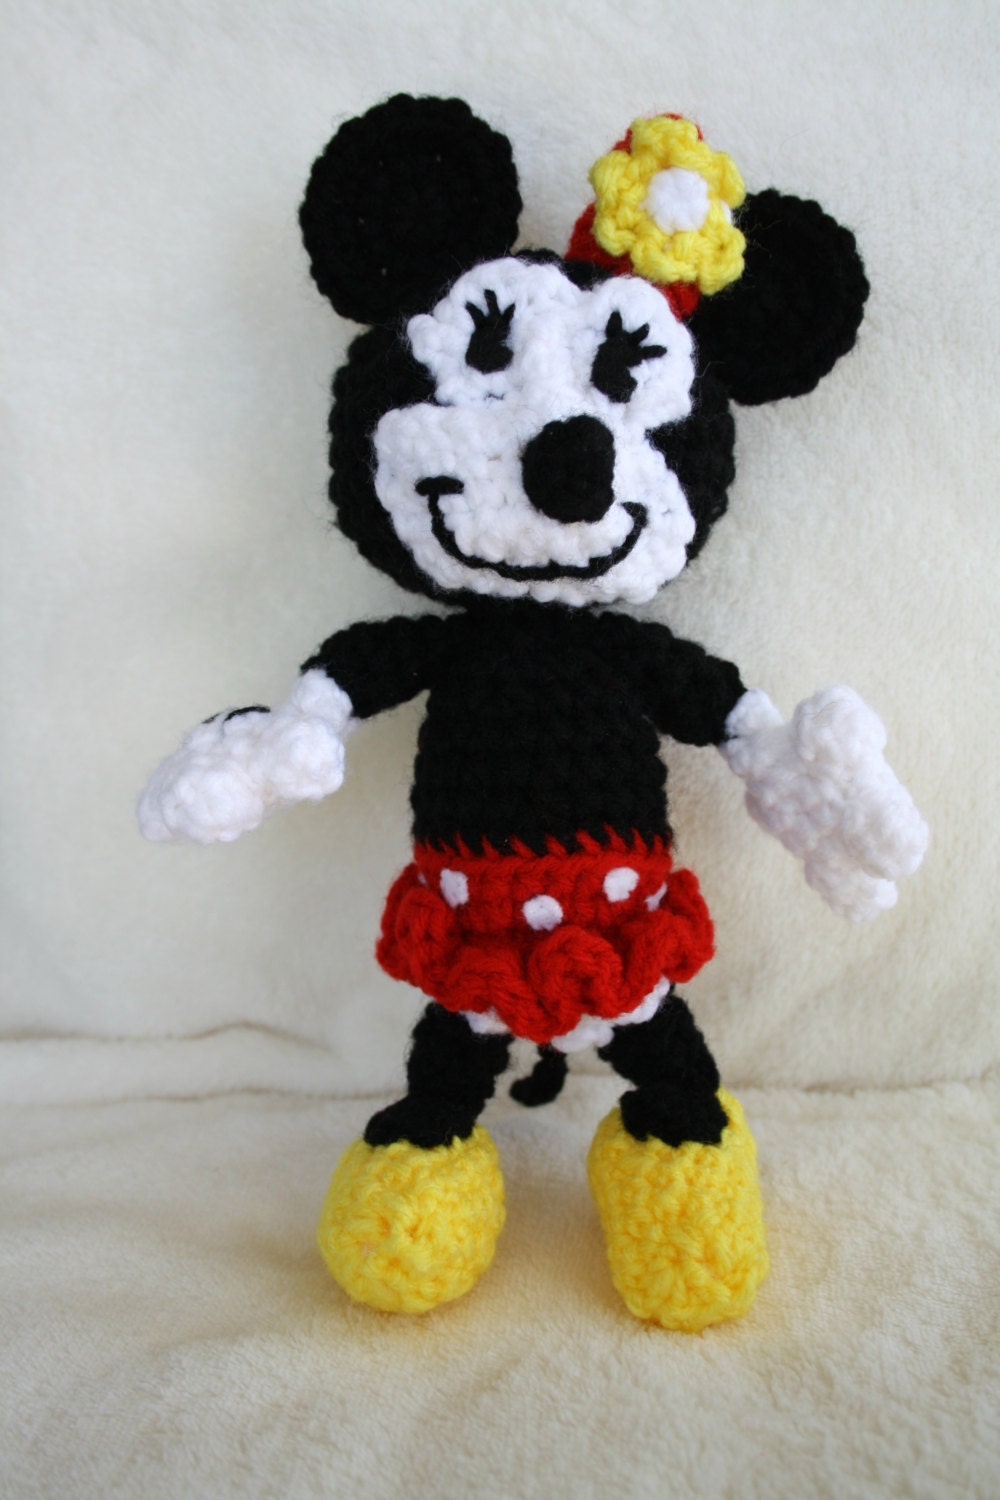 Minnie Mouse Amigurumi Crochet by Brazikat on Etsy